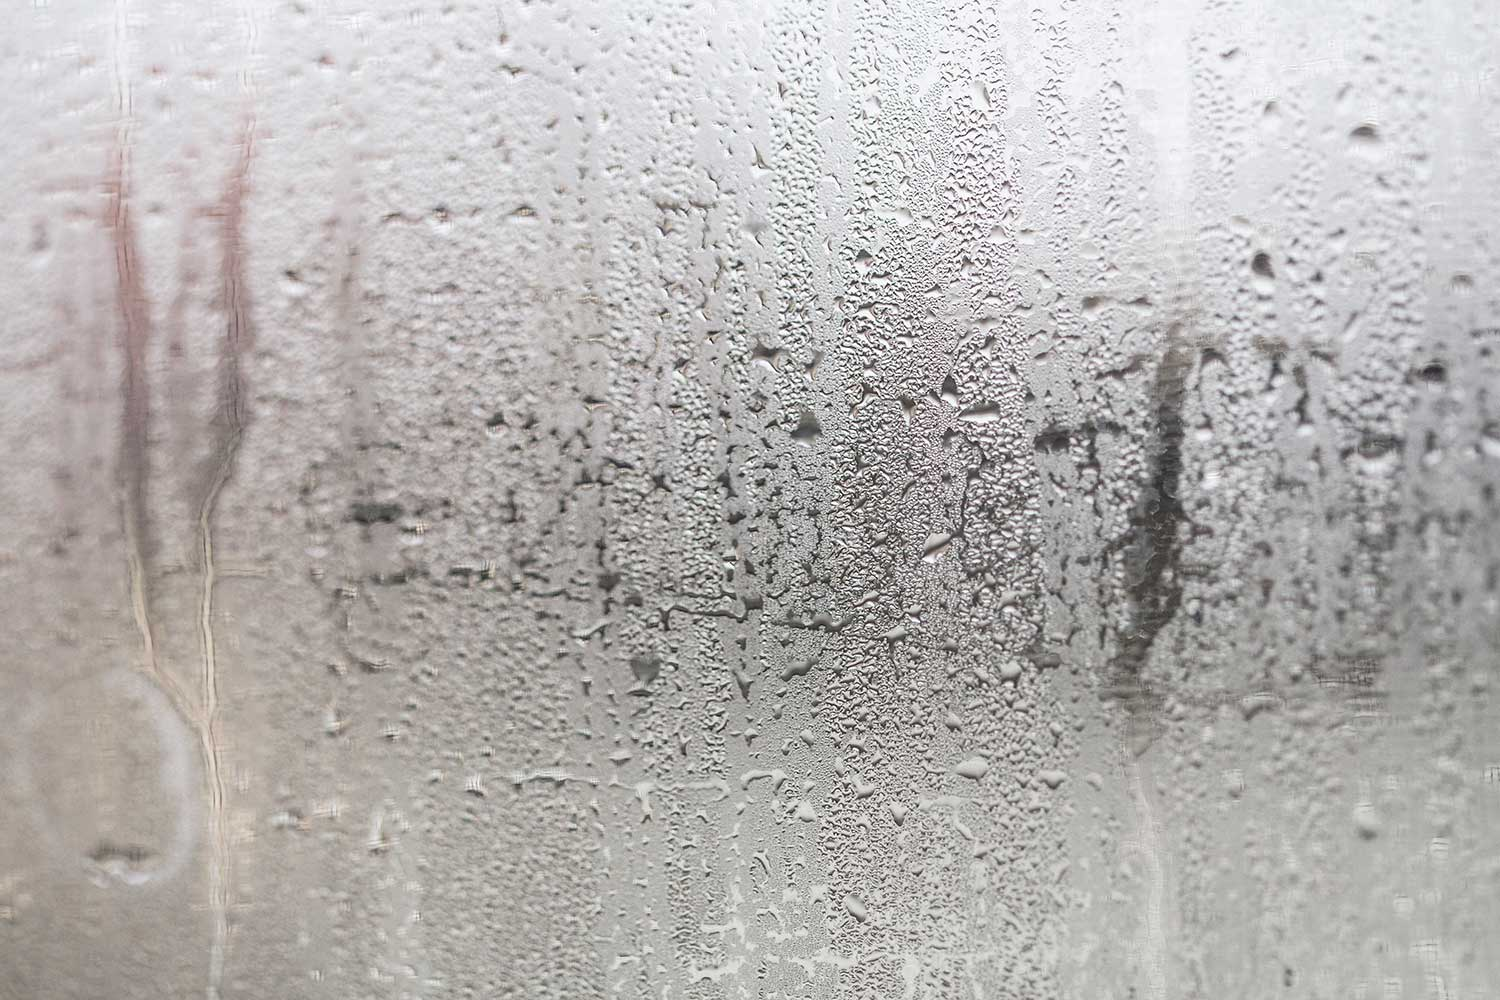 Condensation on window glass caused by high humidity in winter